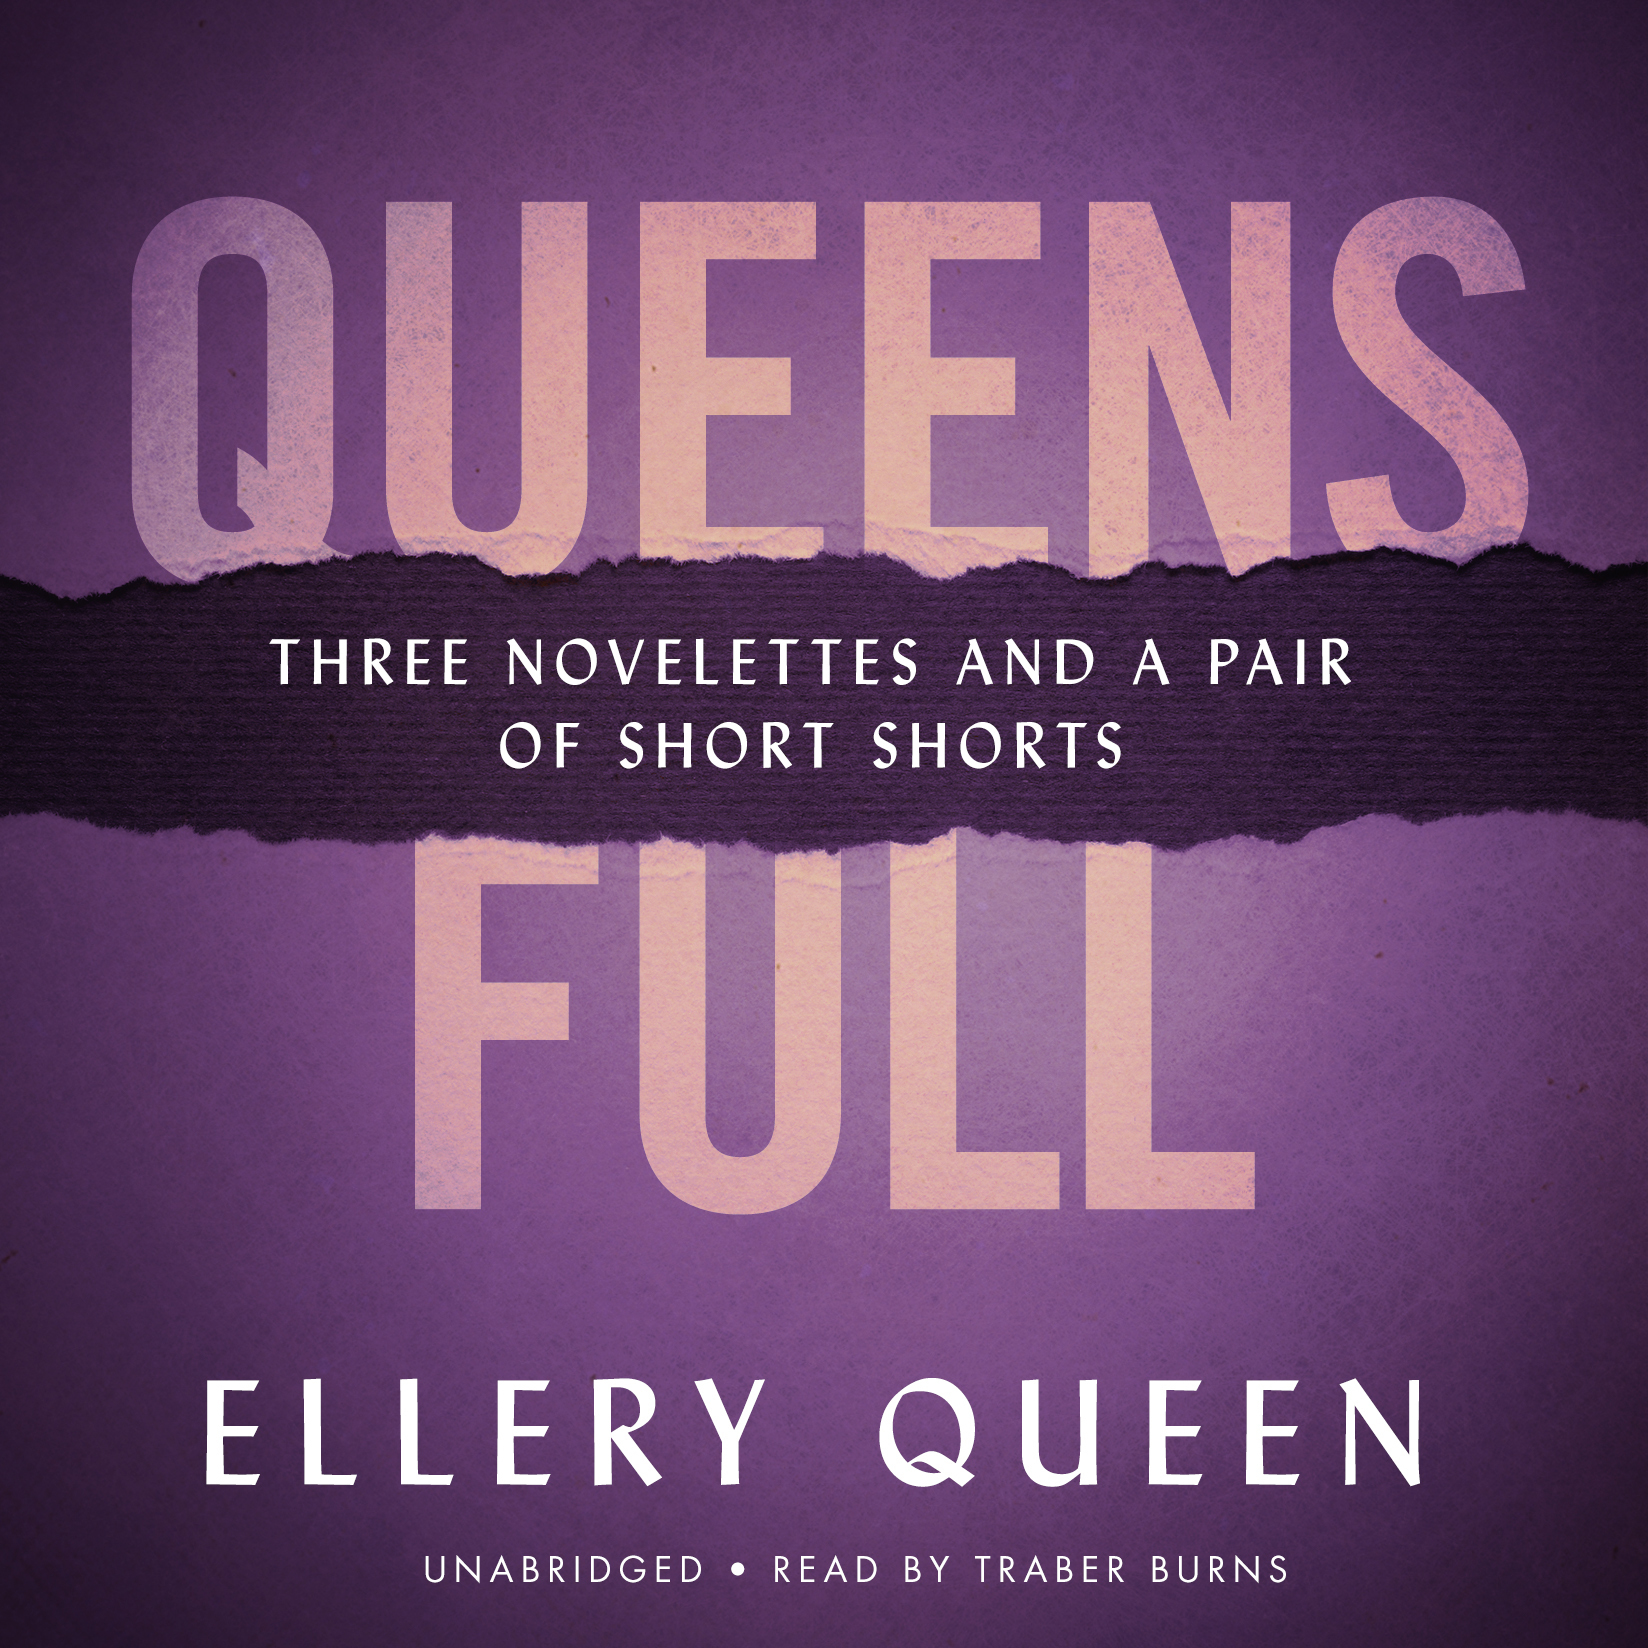 Printable Queens Full: Three Novelettes and a Pair of Short Shorts Audiobook Cover Art